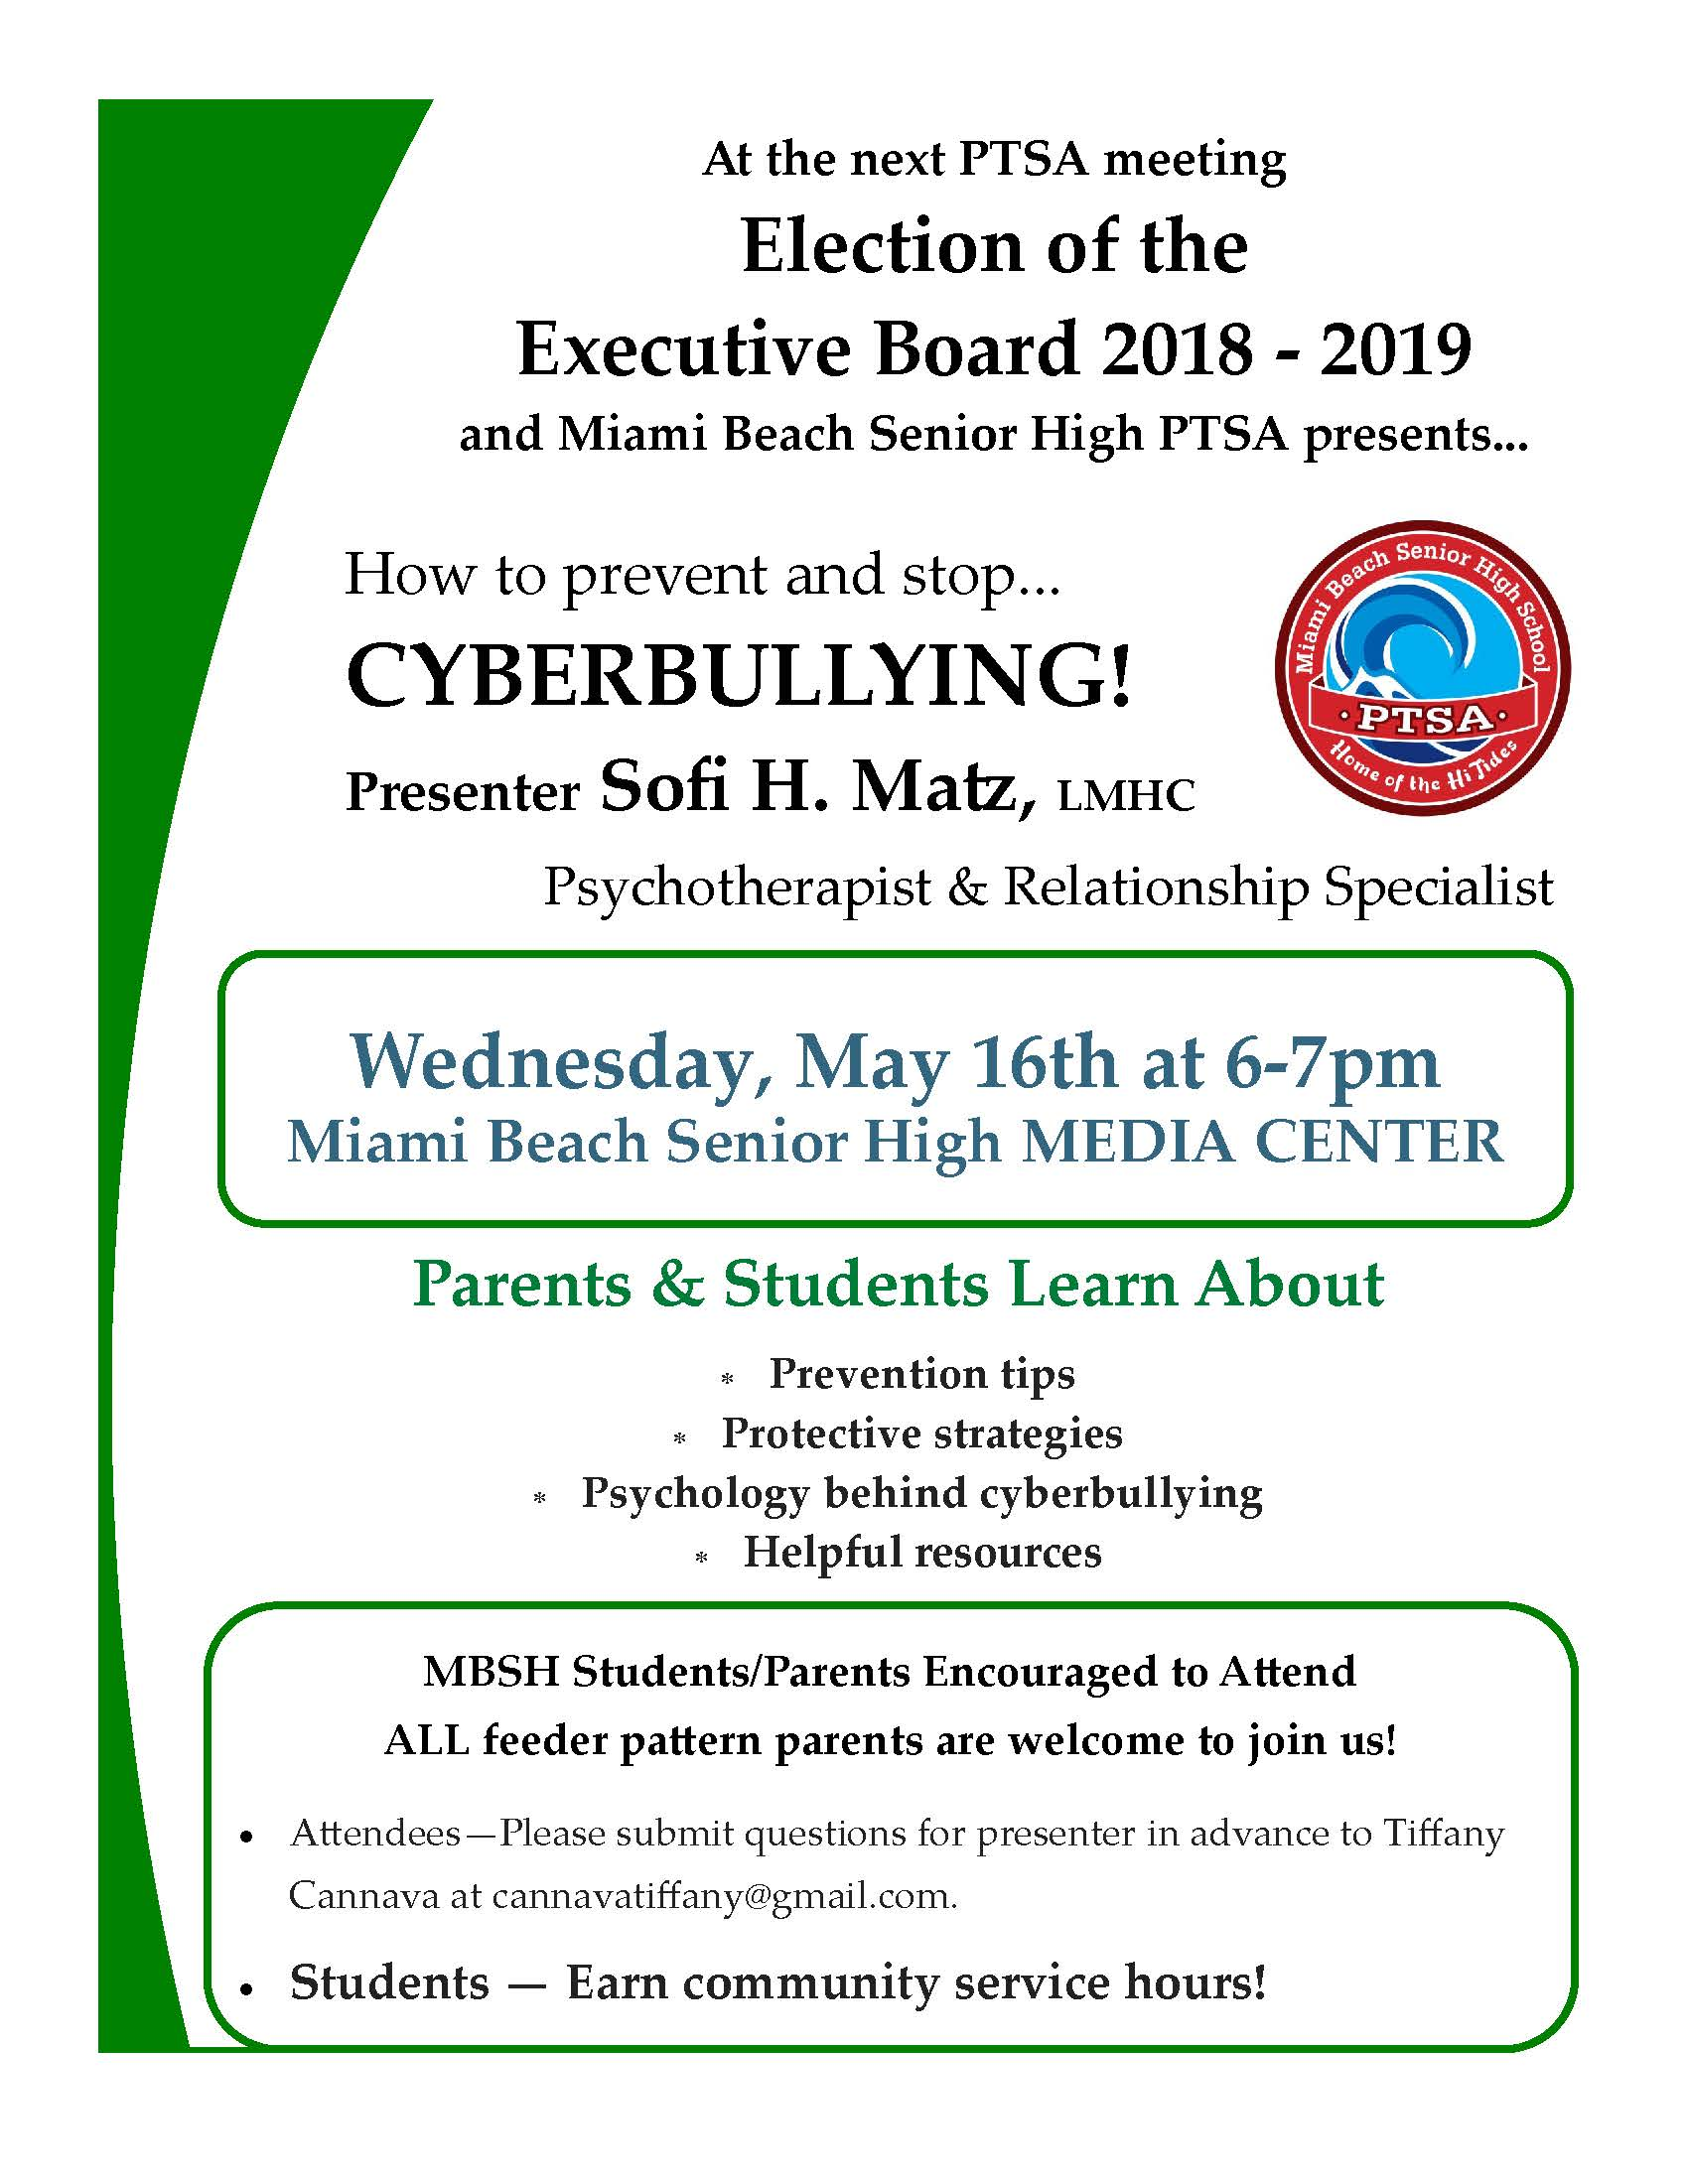 final5.16.18 PTSA flyer meeting